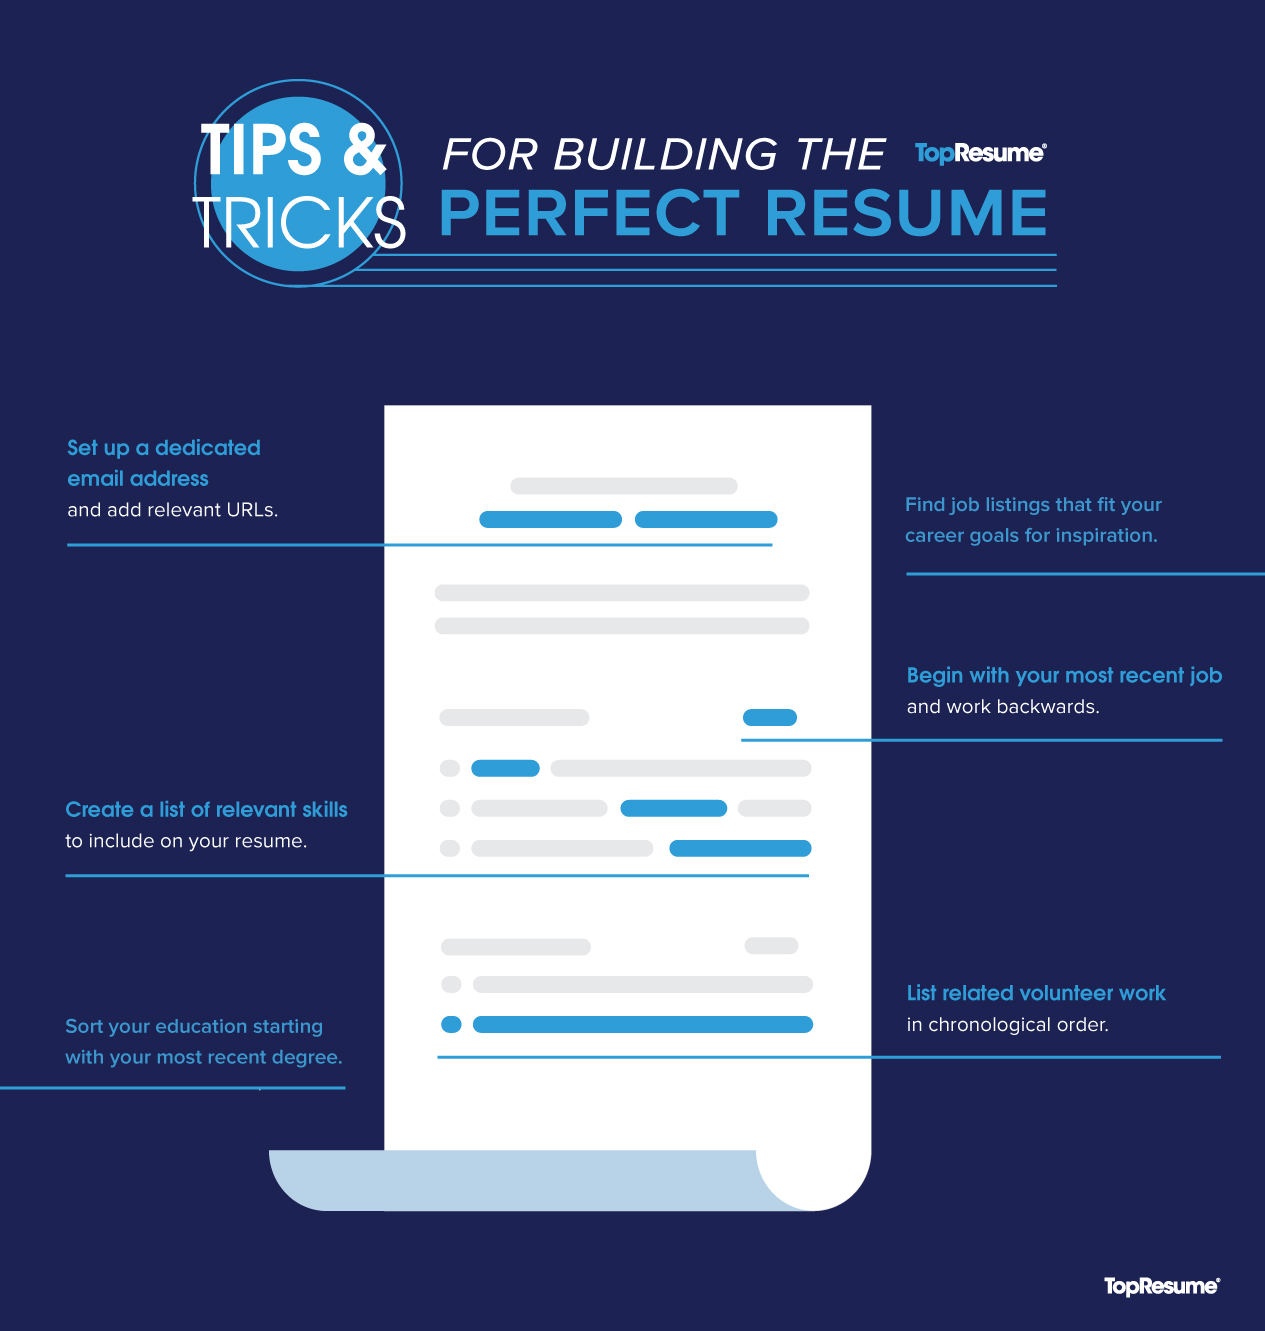 steps to writing the perfect resume topresume best tips 11stepsinfographic monique Resume Best Resume Writing Tips